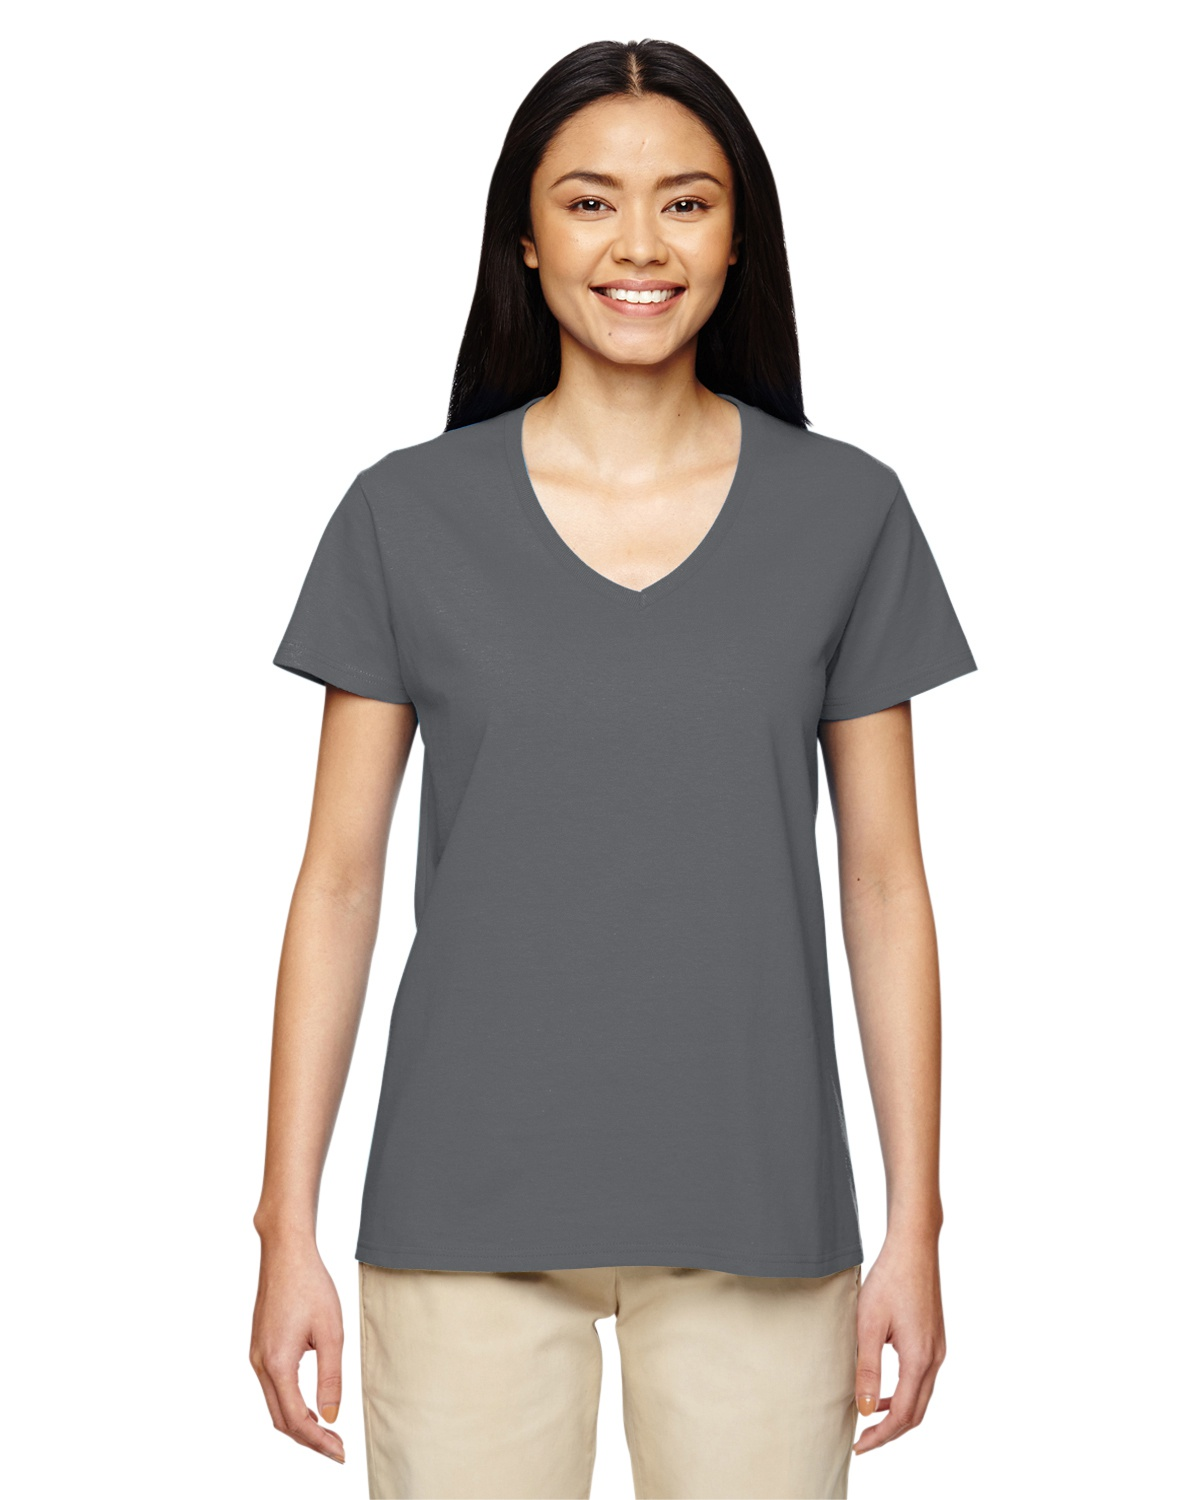 03ad40bc81 Gildan G500VL | Buy Ladies' V-Neck T-Shirt - VeeTrends.com